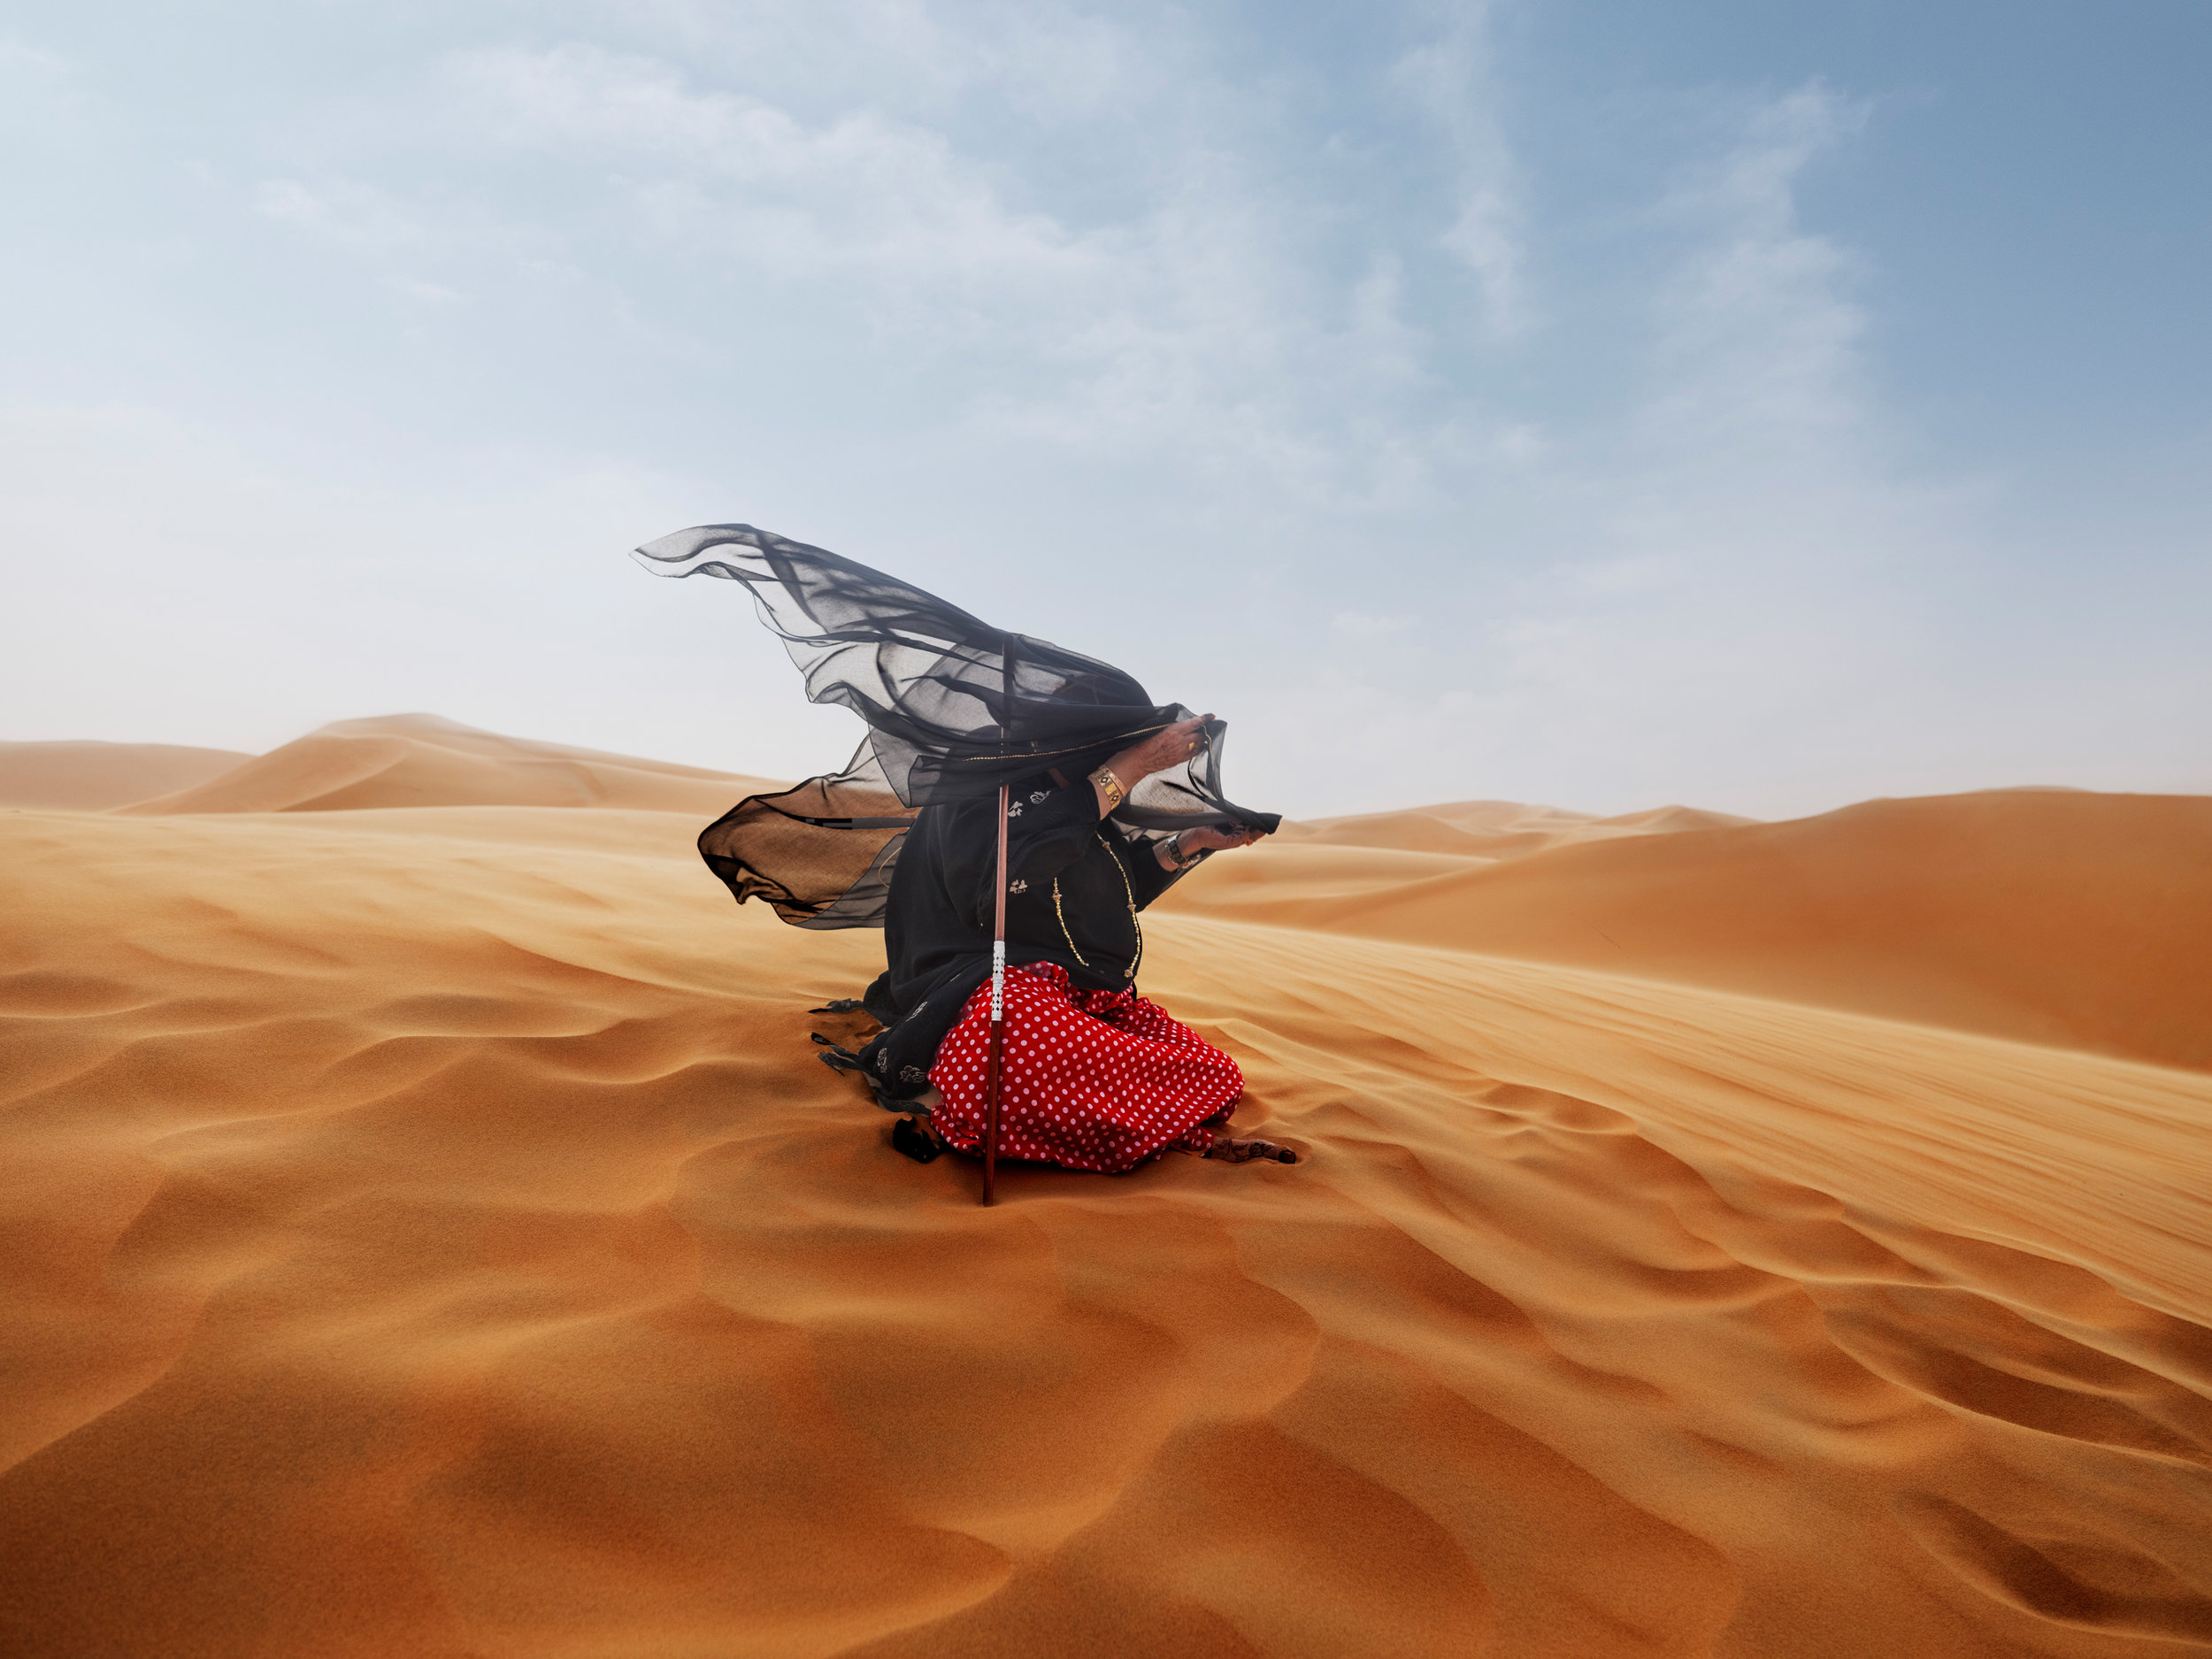 Untold Stories | The Camel Queen | Department of Culture and Tourism Abu Dhabi   Agency: M&C Saatchi UAE  Photographer:  Katarina Premfors